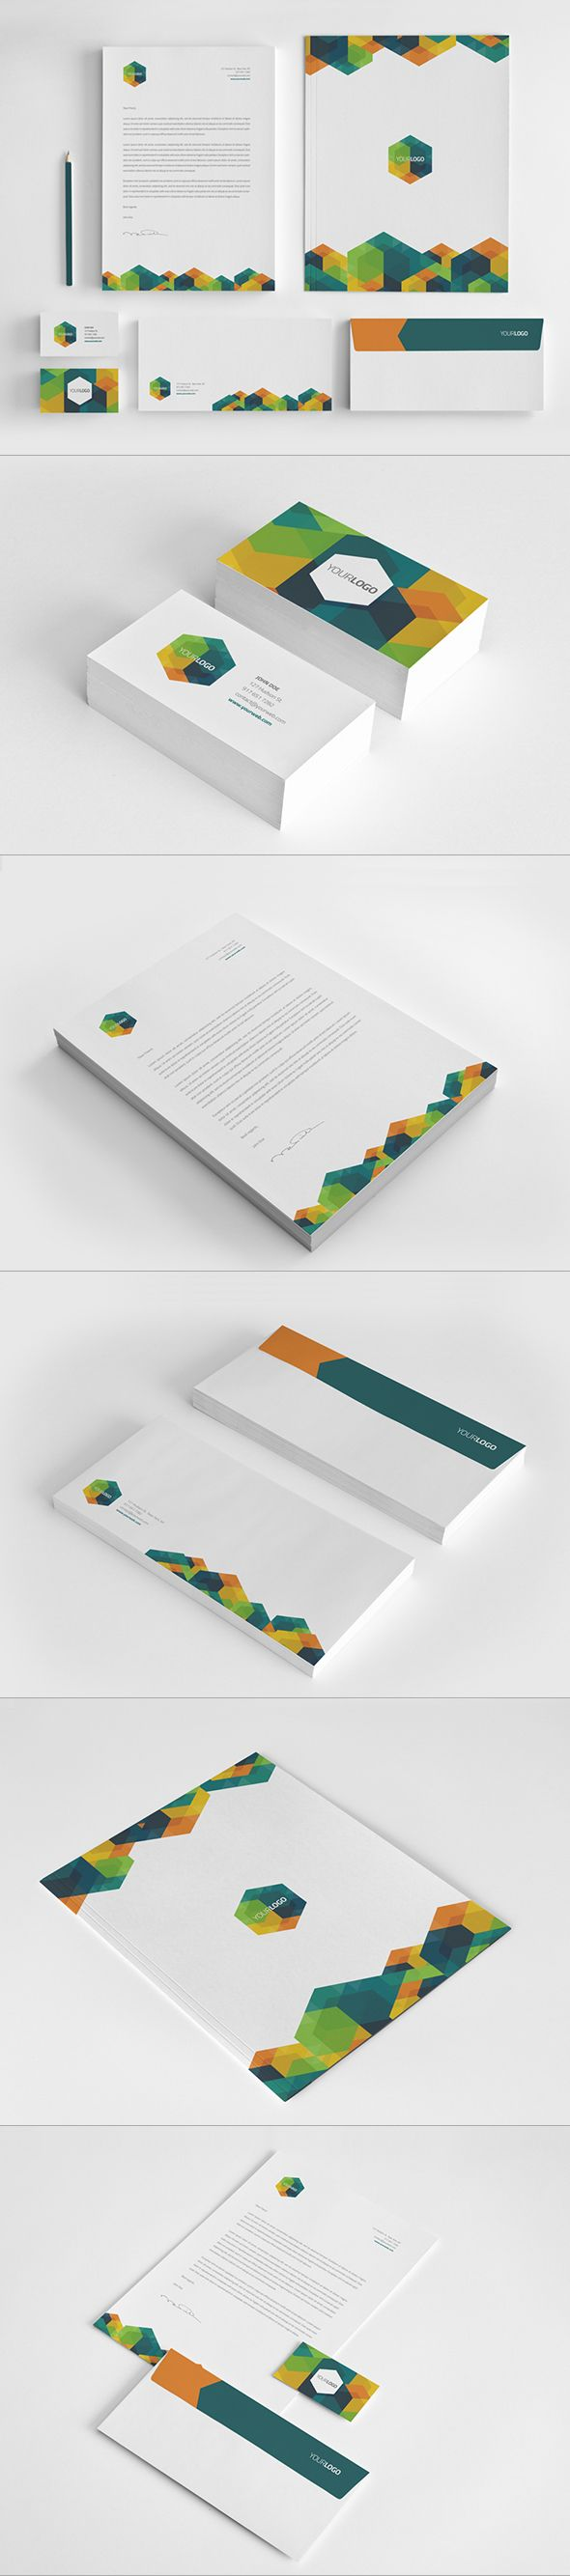 Hexo Stationary Design by Abra Design, via Behance. I like the geometric shapes, but not so much the colour sheme.